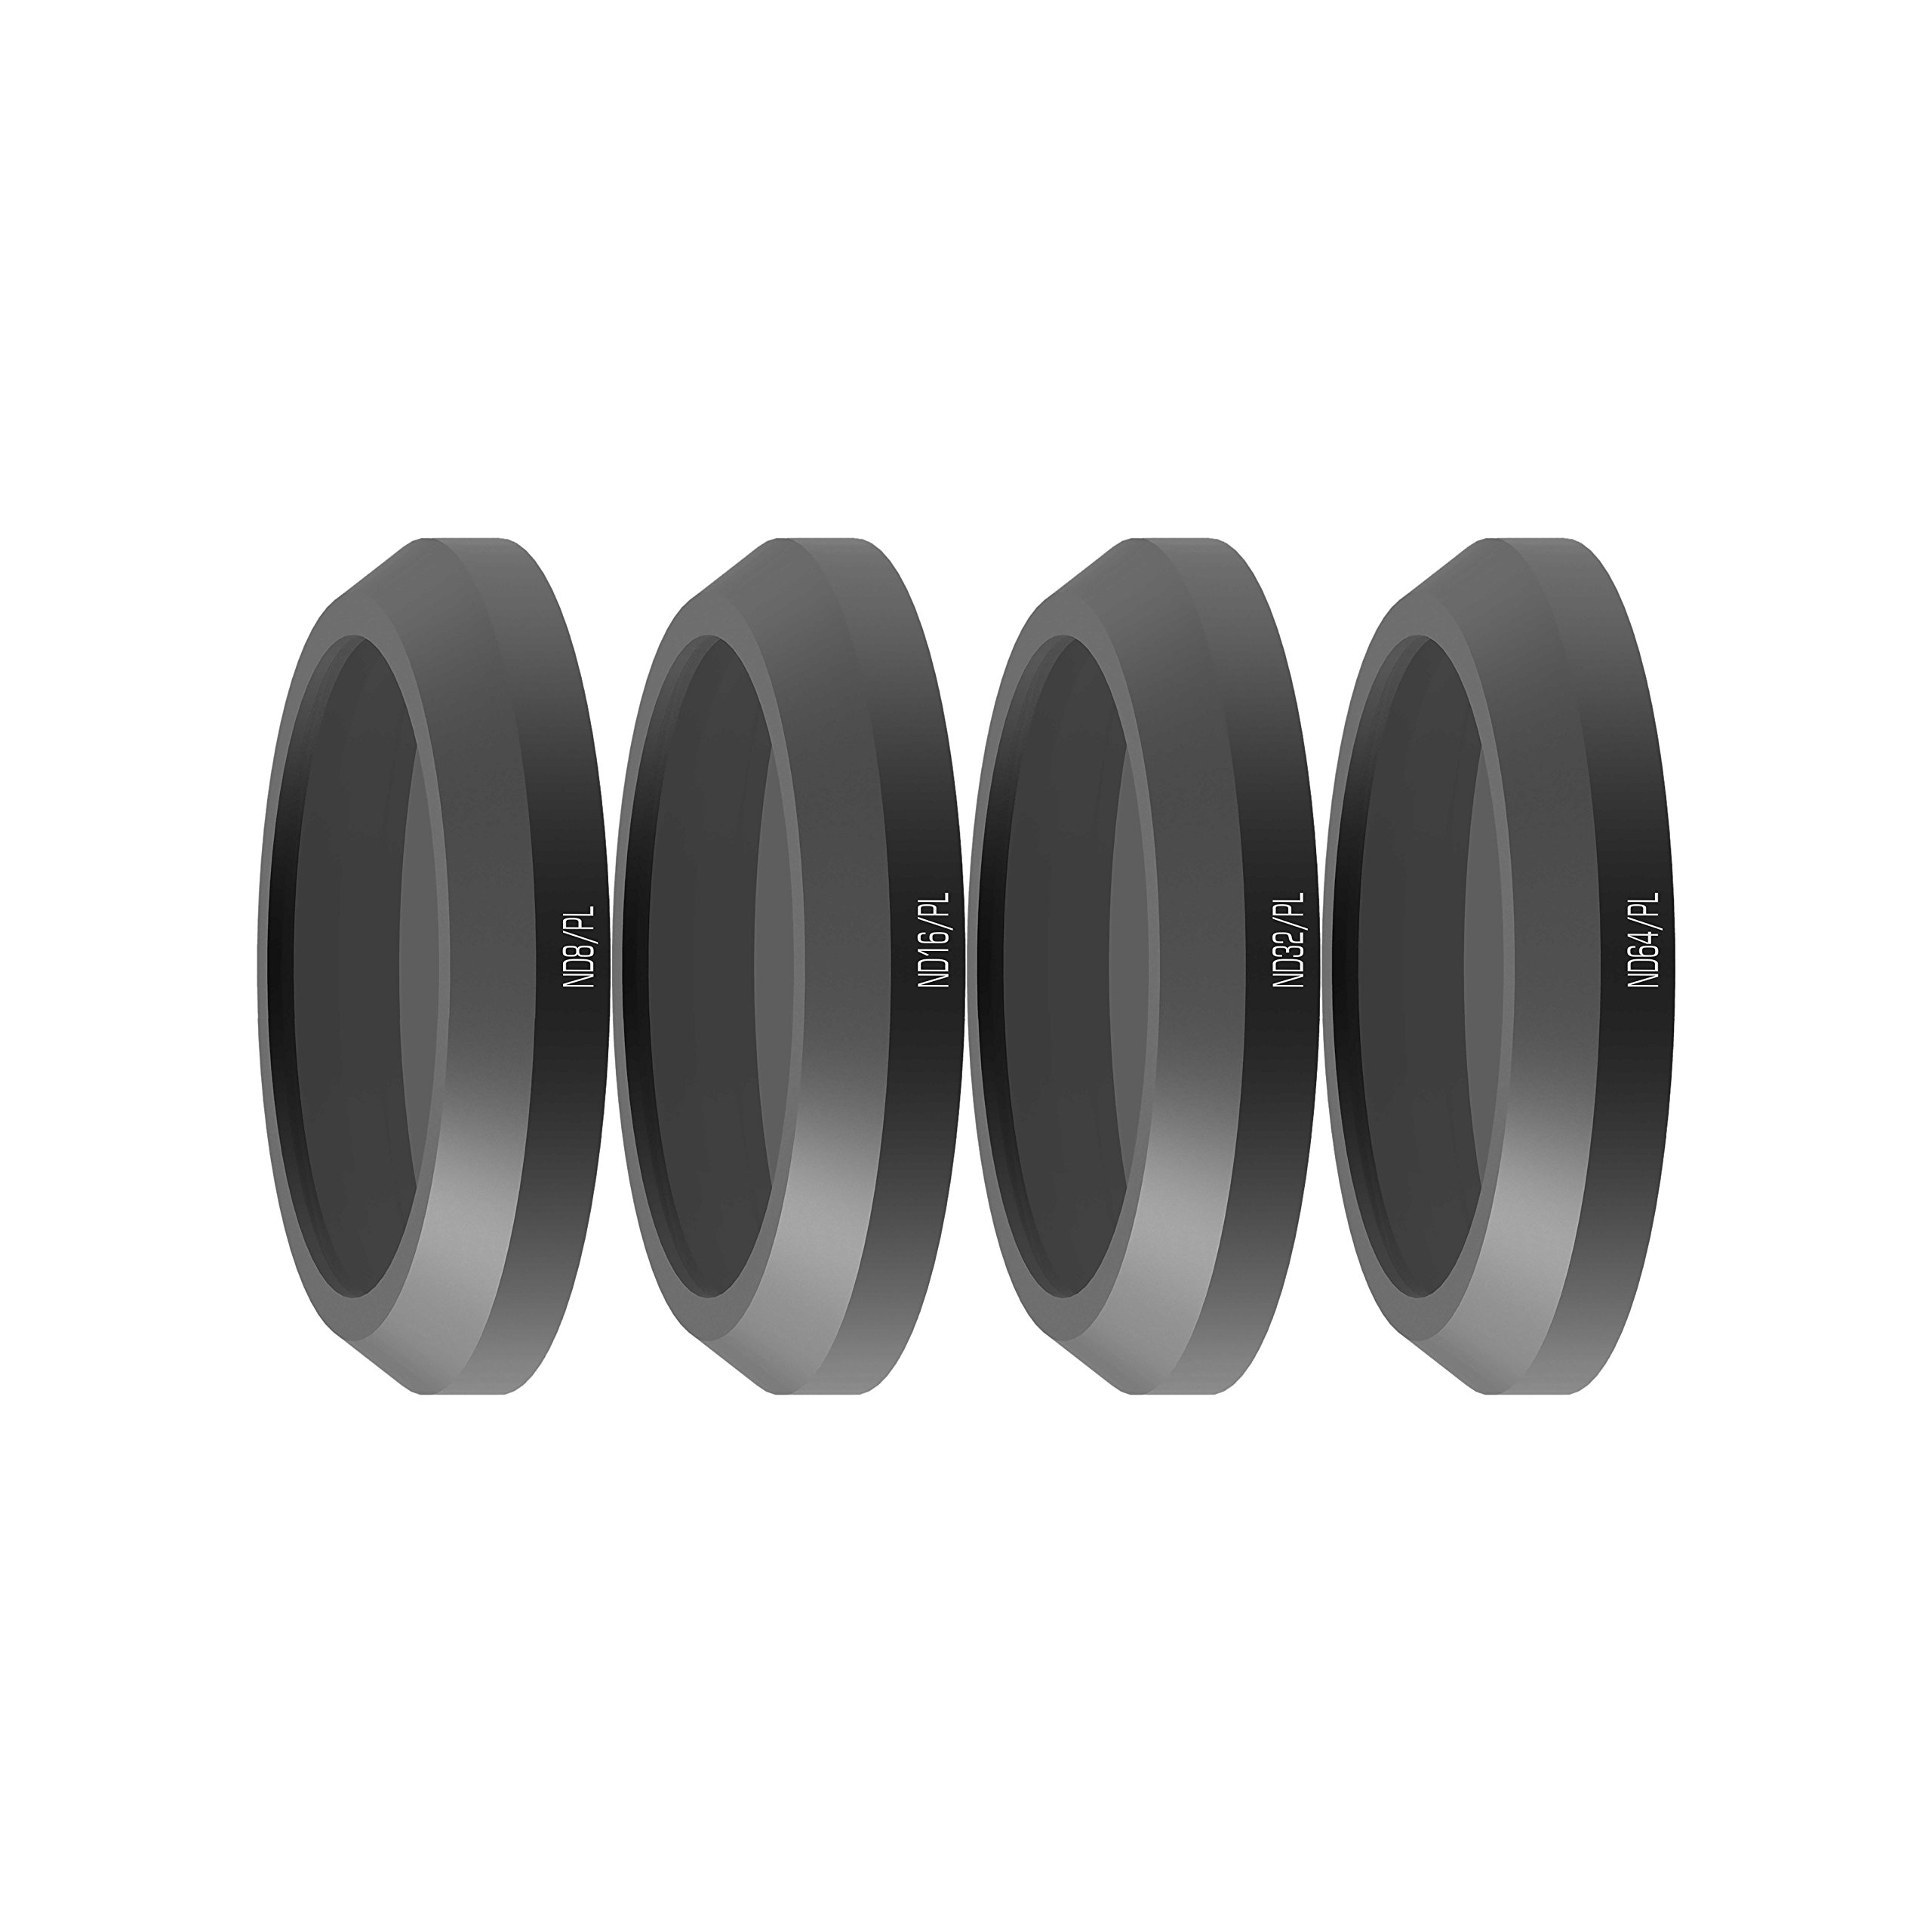 Freewell Bright Day-Camera Lens Filters Set 4Pack ND8/PL, ND16/PL, ND32/PL, ND64/PL Made for Used with Parrot Anafi Drone